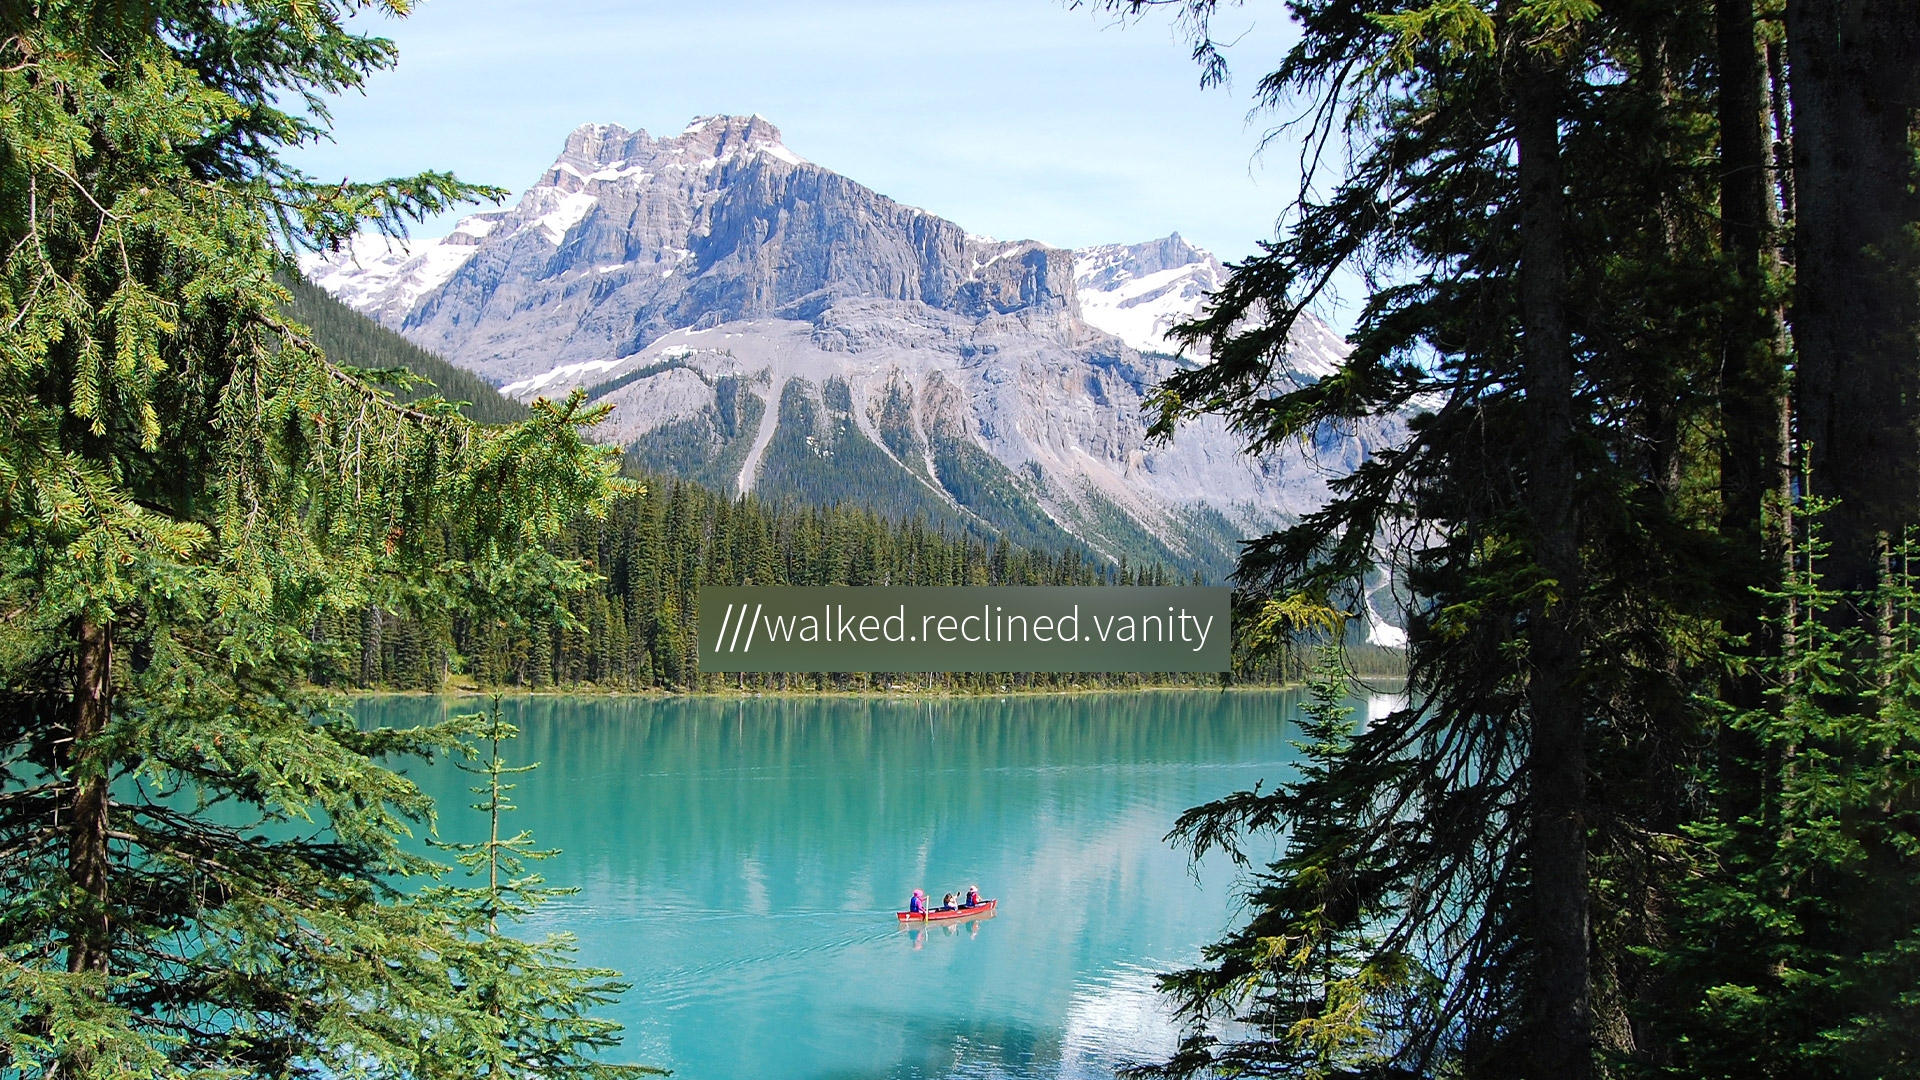 tourists row in a blue lake surrounded by forest and mountains